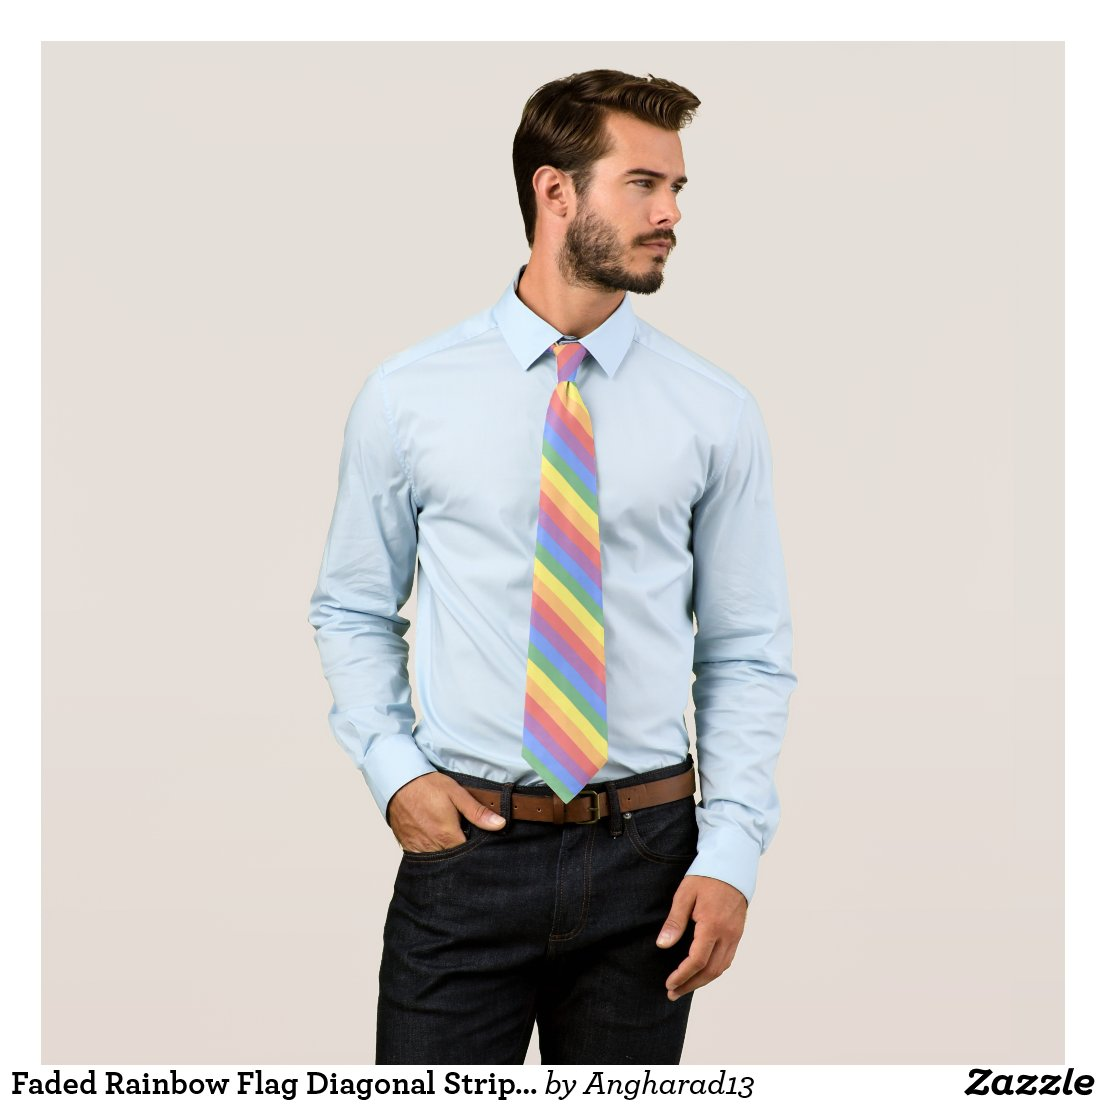 Faded Rainbow Flag Diagonal Stripe LGBT Pride Tie